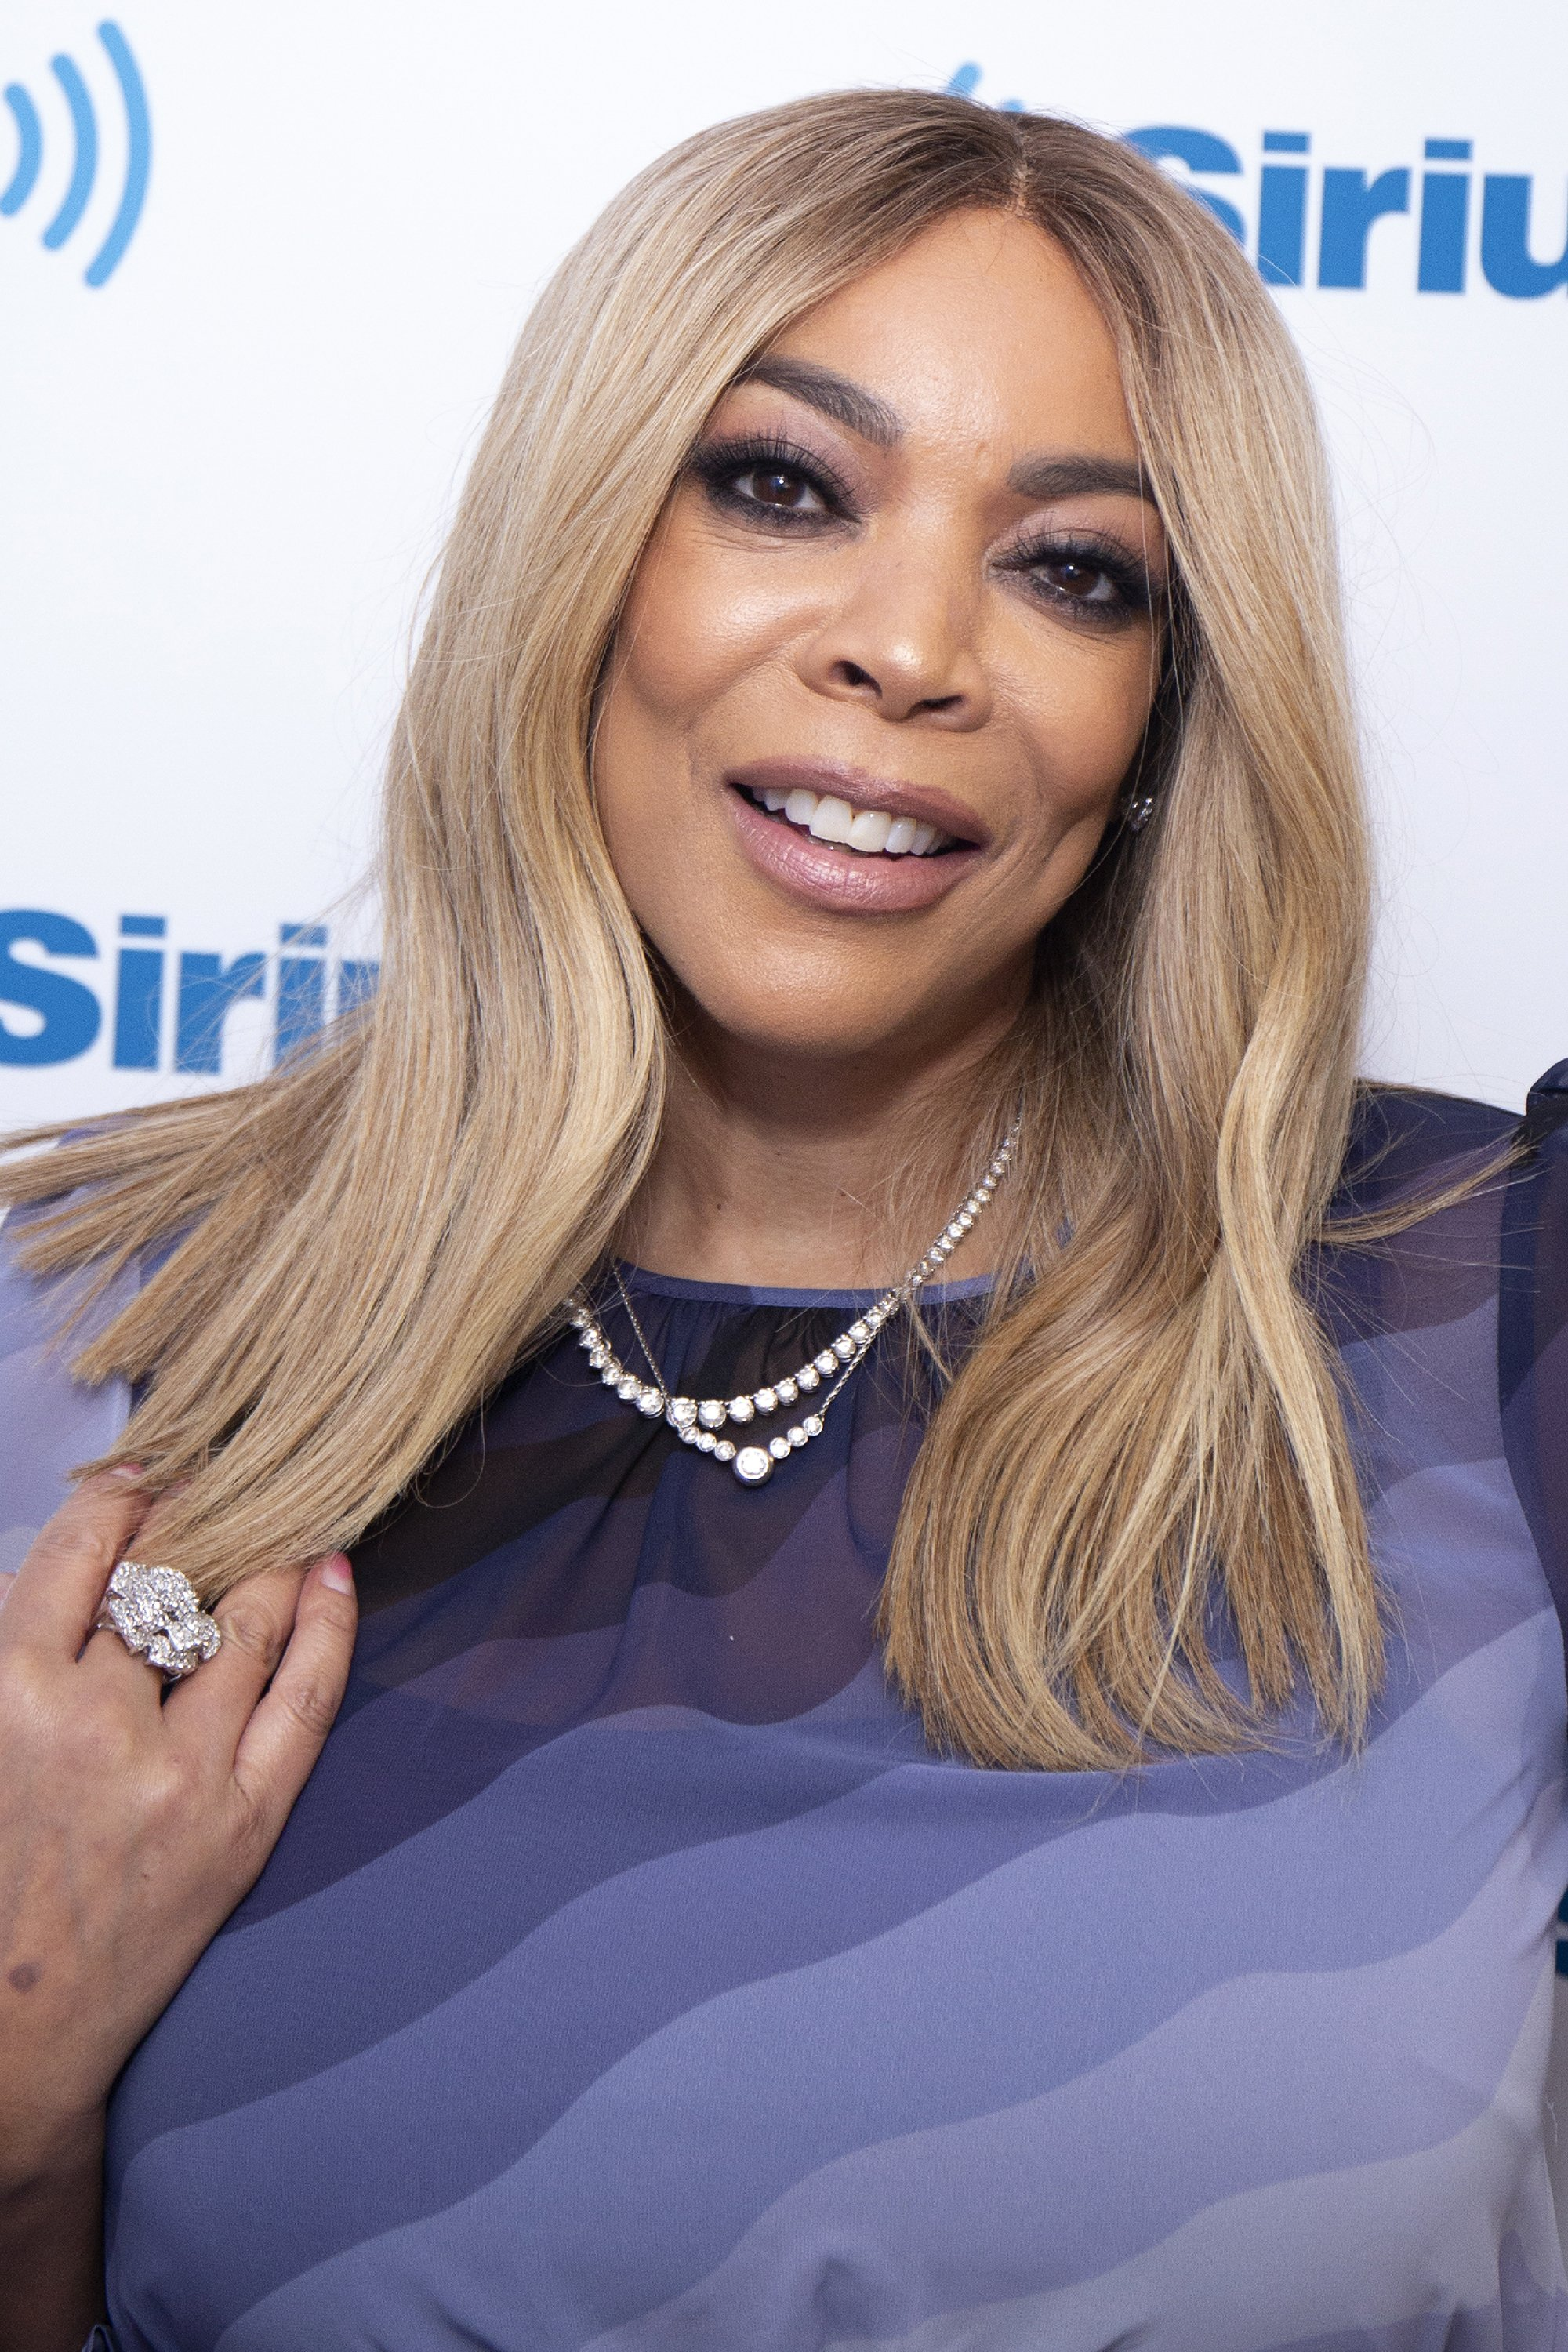 Wendy Williams at the SiriusXM Studios in September 2018.   Photo: Getty Images